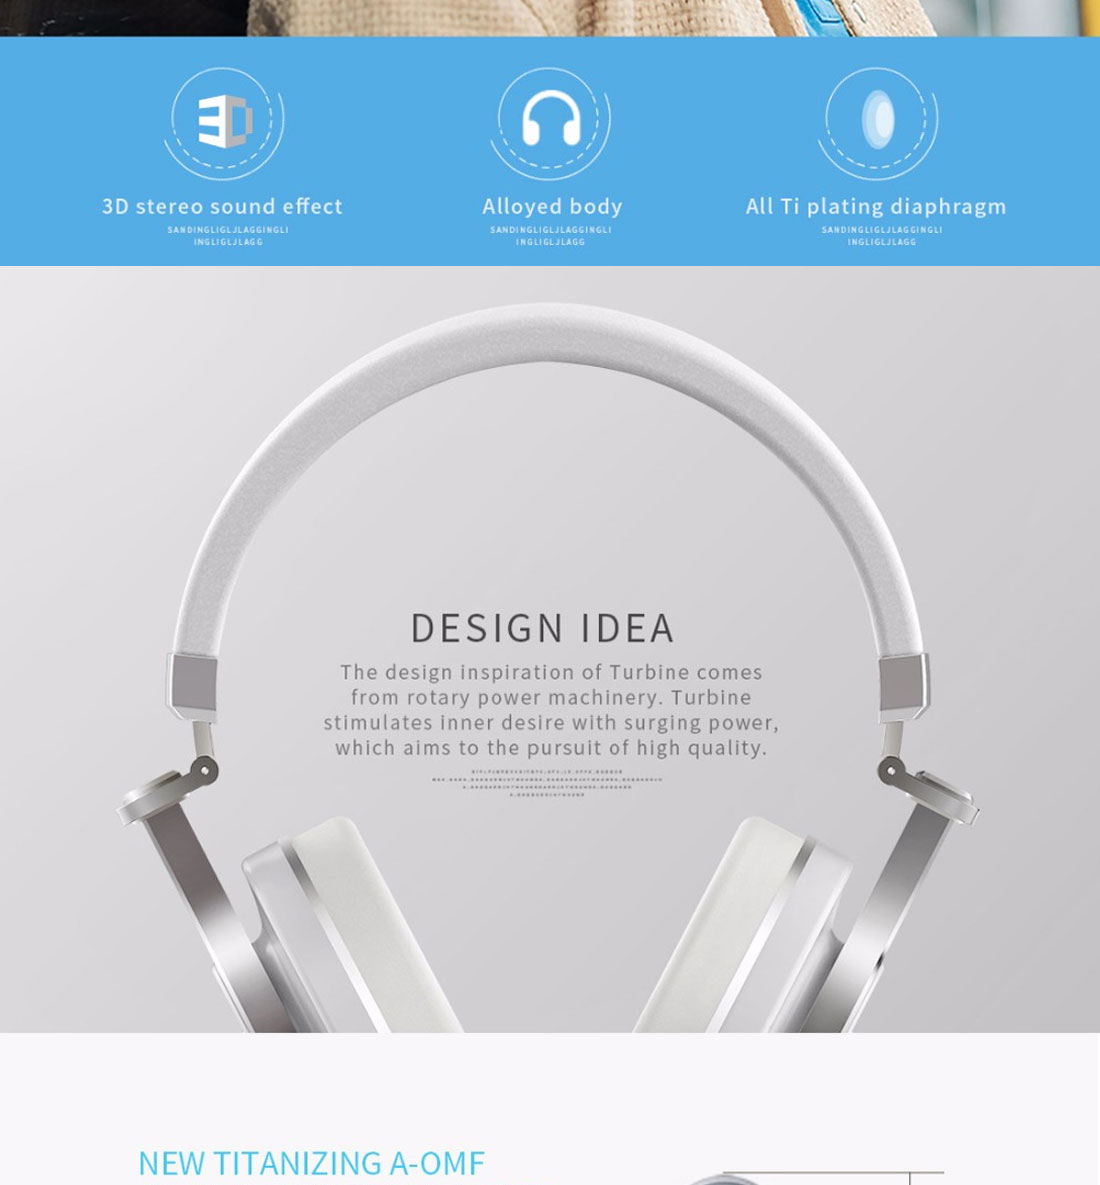 t3 headphones